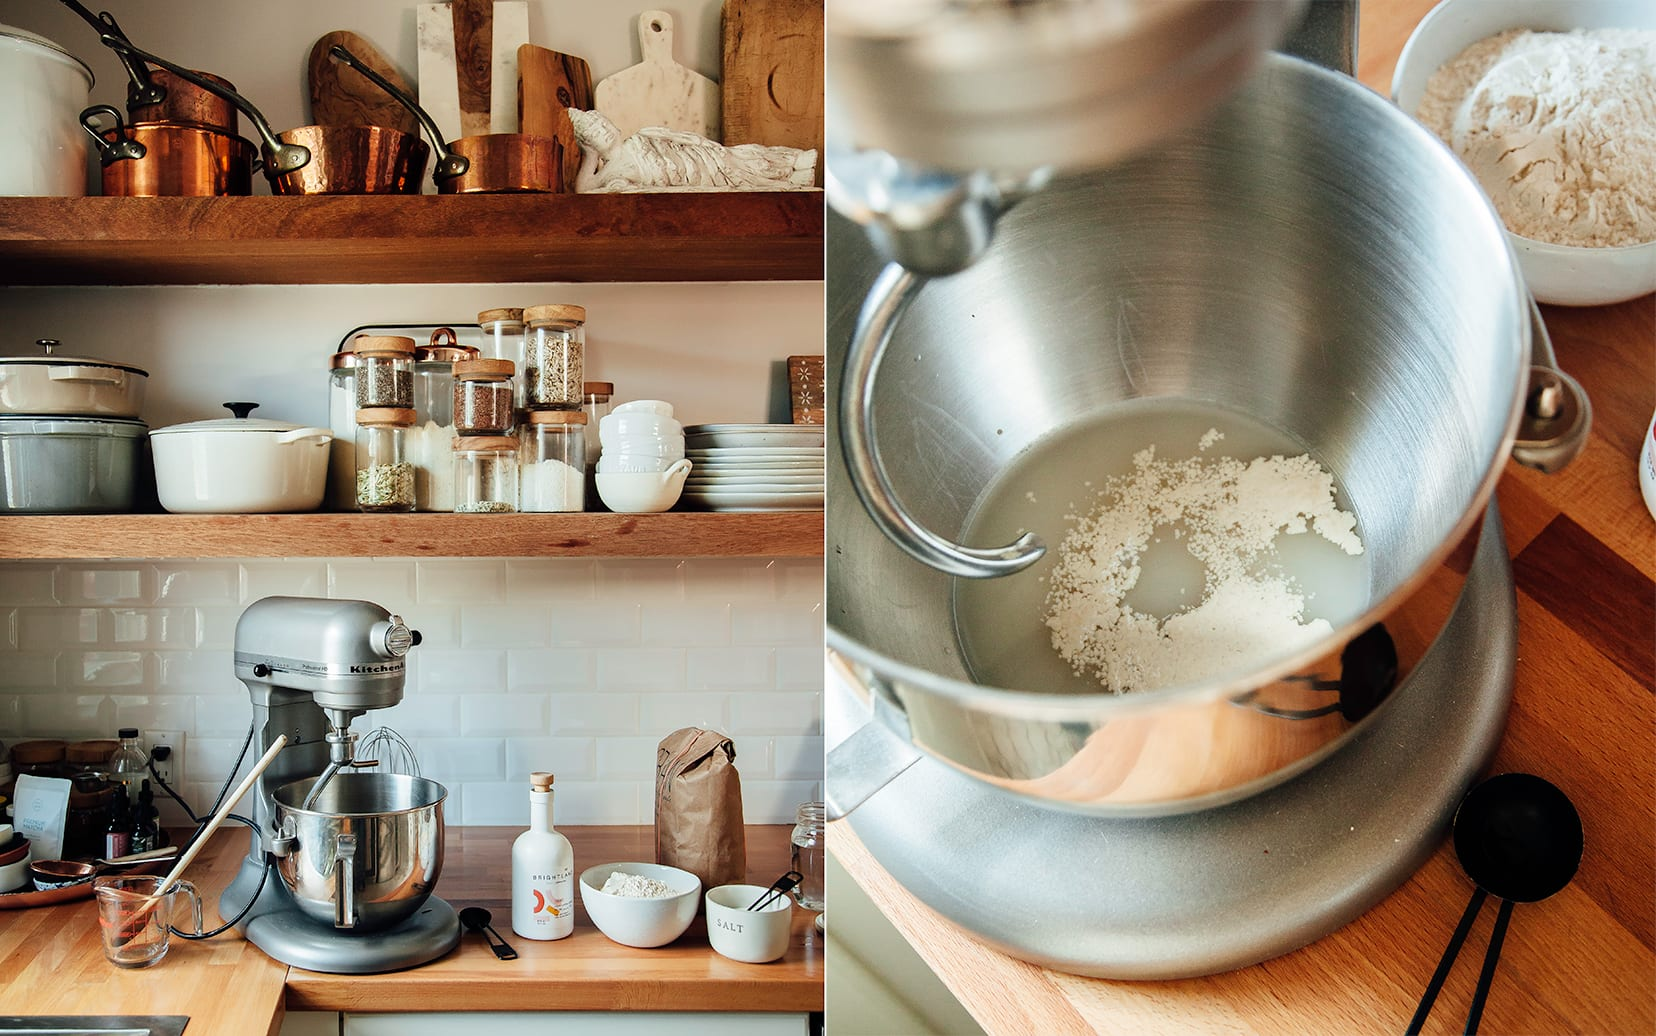 Two photos are shown. One shows a stand mixer on the counter in a kitchen with ingredients for pizza dough nearby. The other photo is an overhead shot that shows yeast blooming in water inside the bowl of a stand mixer.